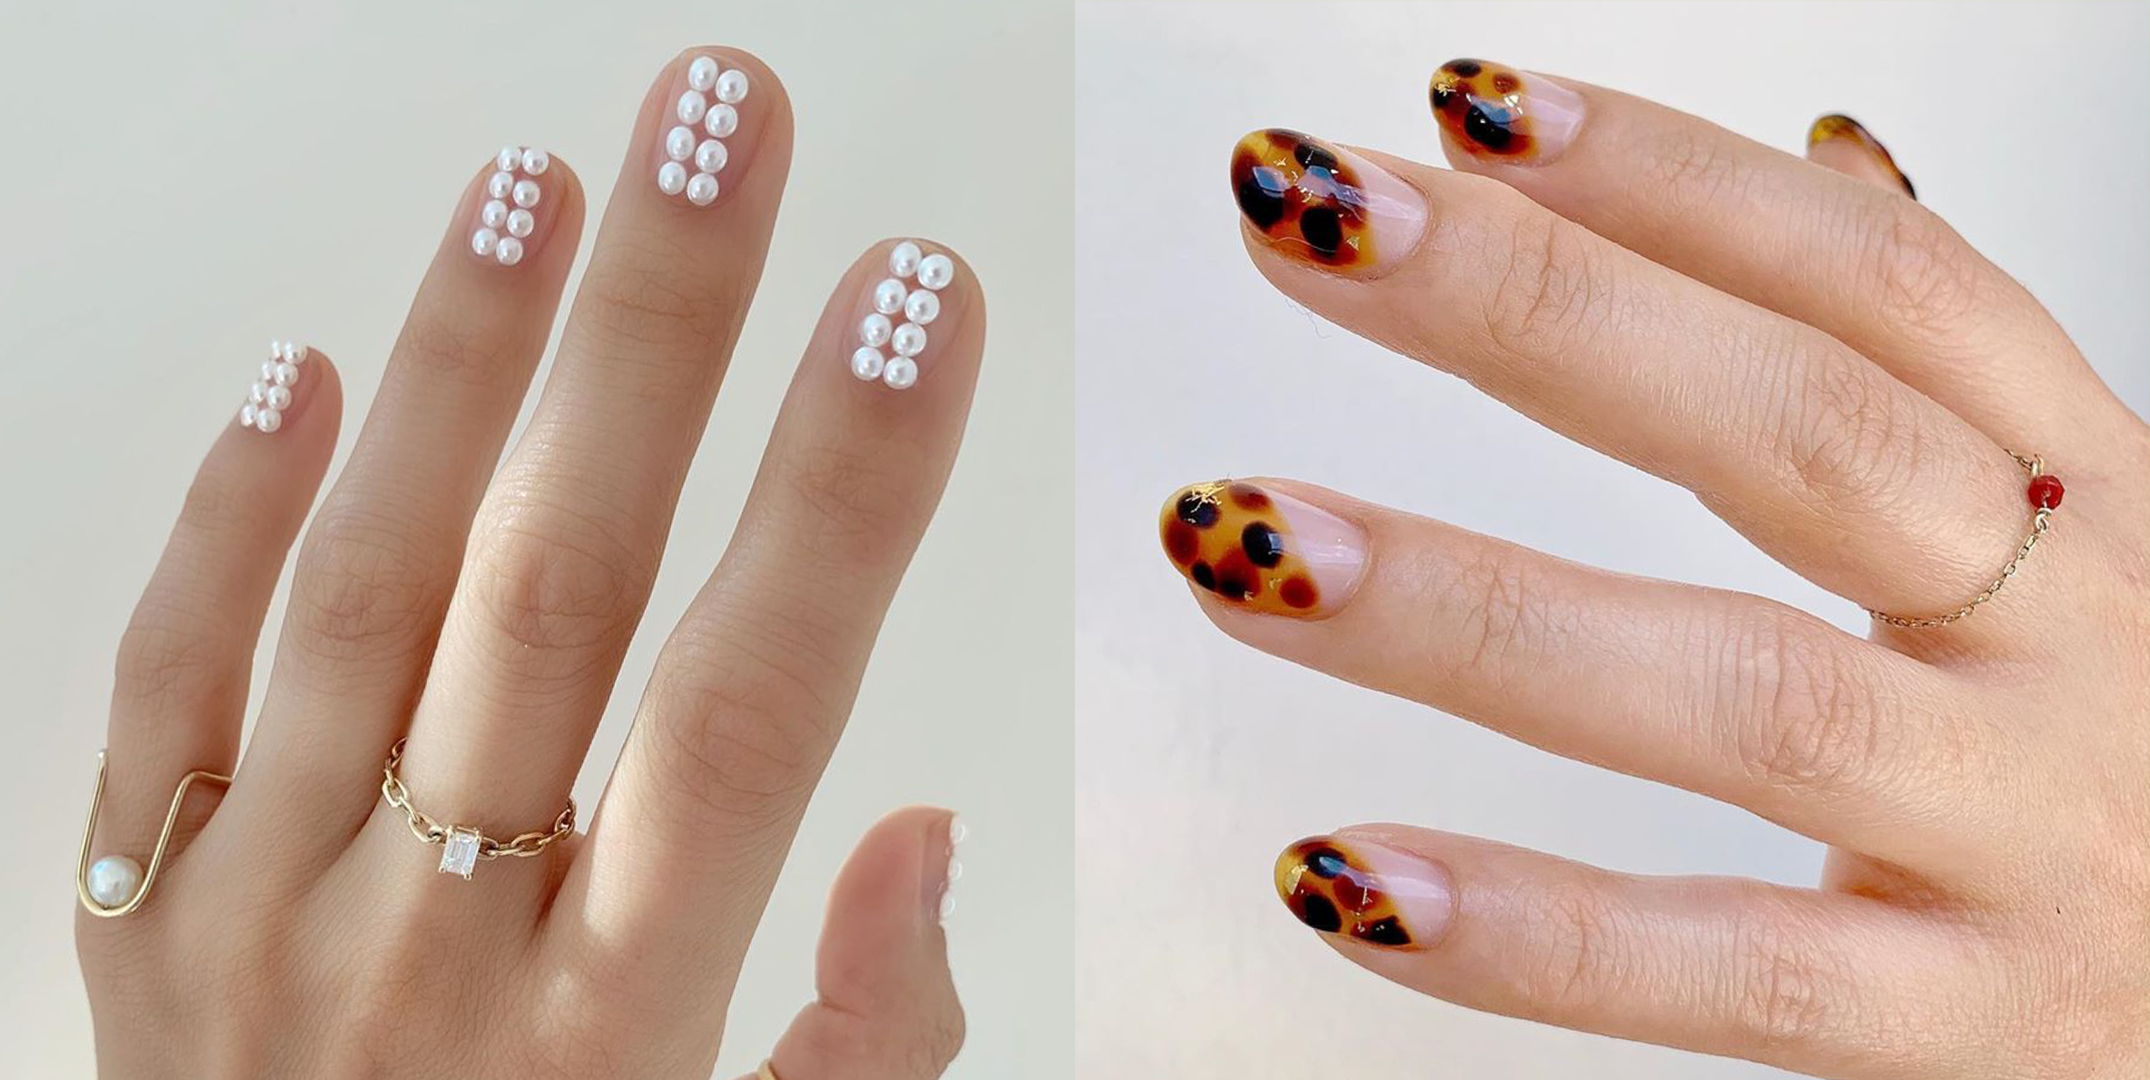 10 Winter Nail Trends for 2019 , Nail Art Ideas for Fall and